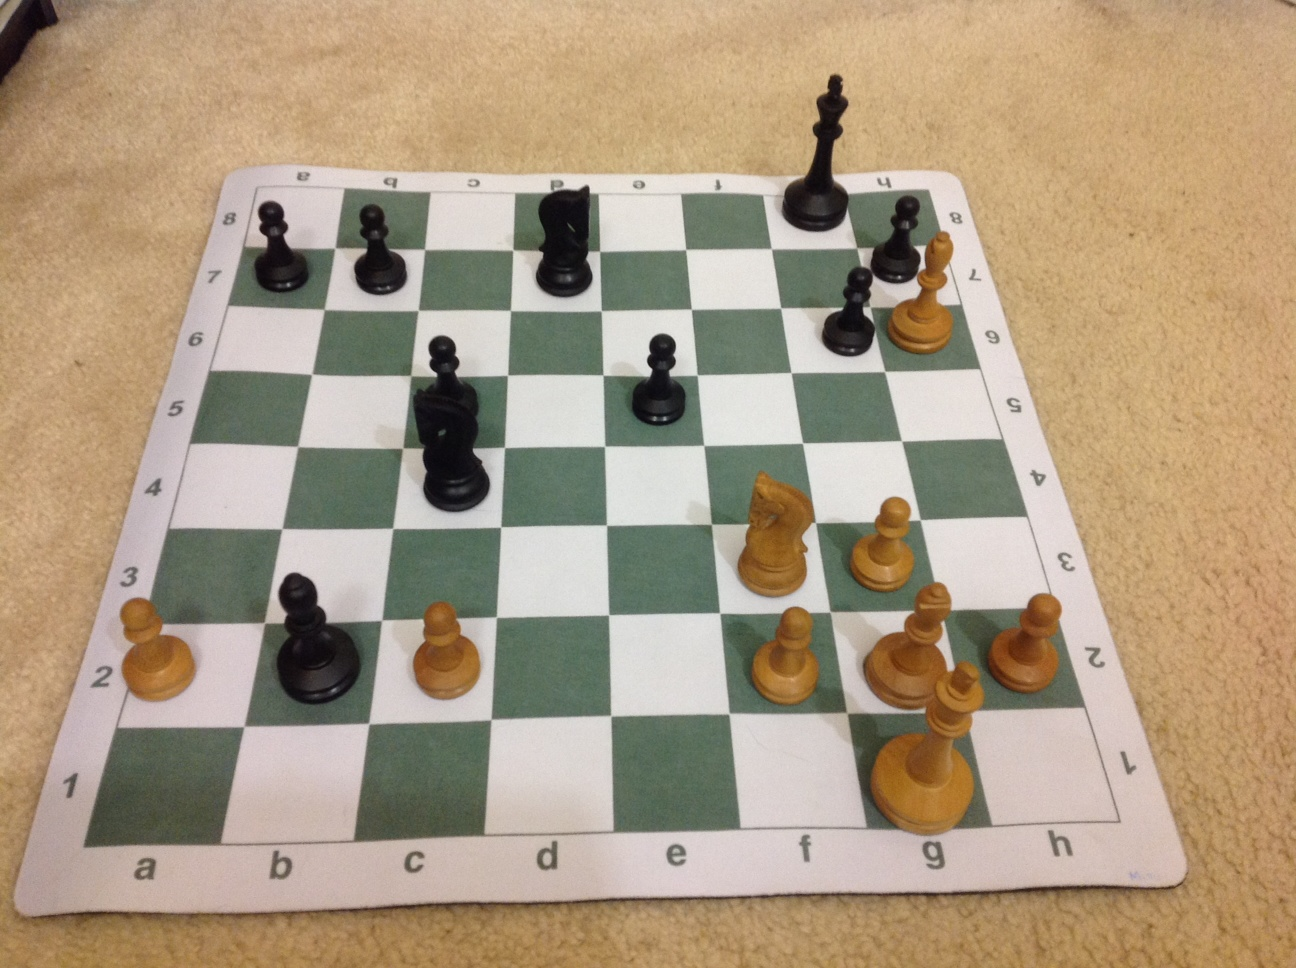 Training position 4 White to move who is better and why